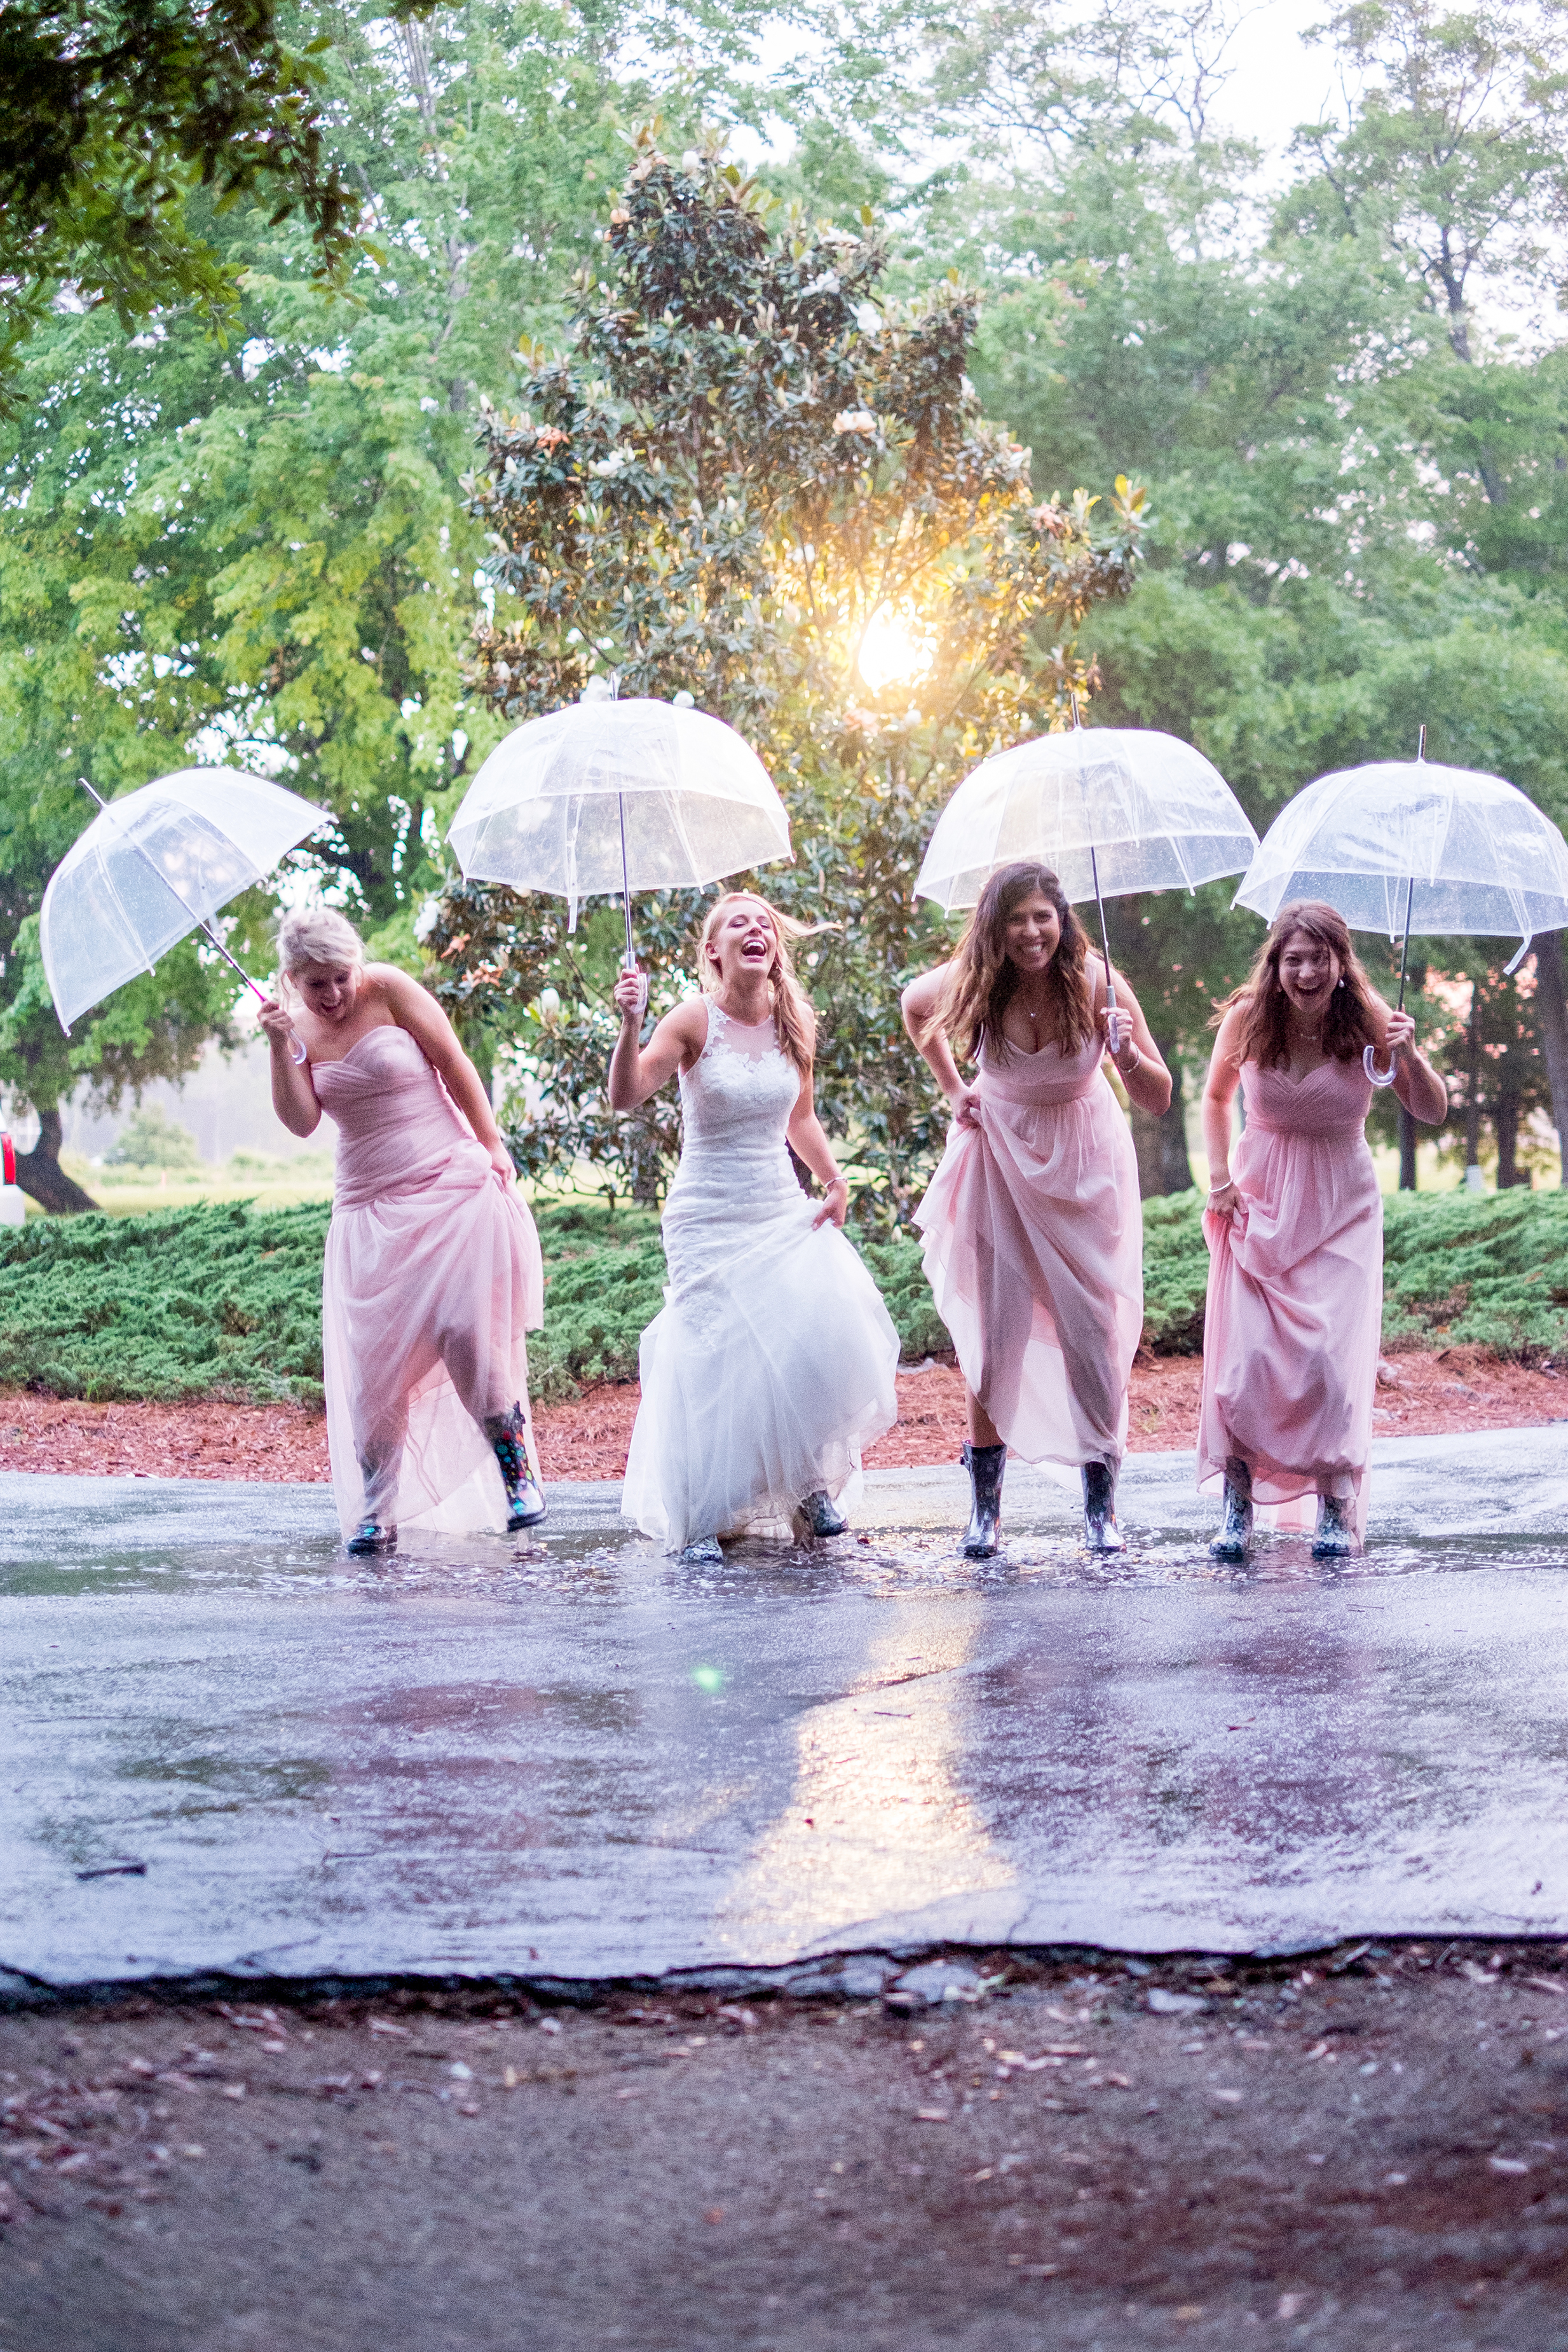 A bride and her bridesmaids, umbrellas in hand, and rain boots on their feet, sharing a laugh after jumping into a puddle. Photo taken by Pait Photography, at a wedding at St. James Plantation, in St. James, NC.